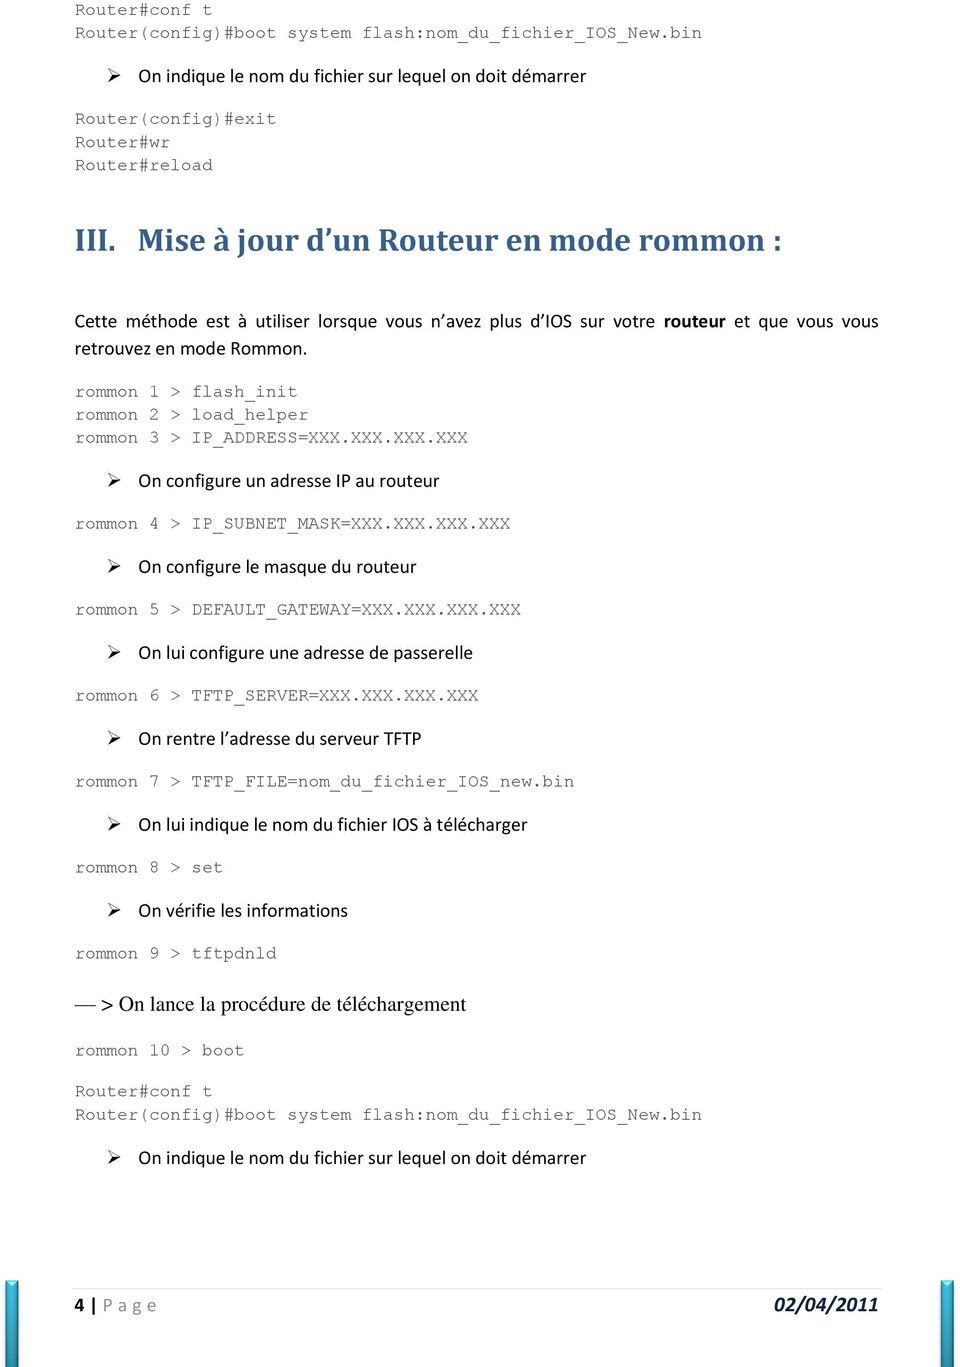 rommon 1 > flash_init rommon 2 > load_helper rommon 3 > IP_ADDRESS=XXX.XXX.XXX.XXX On configure un adresse IP au routeur rommon 4 > IP_SUBNET_MASK=XXX.XXX.XXX.XXX On configure le masque du routeur rommon 5 > DEFAULT_GATEWAY=XXX.